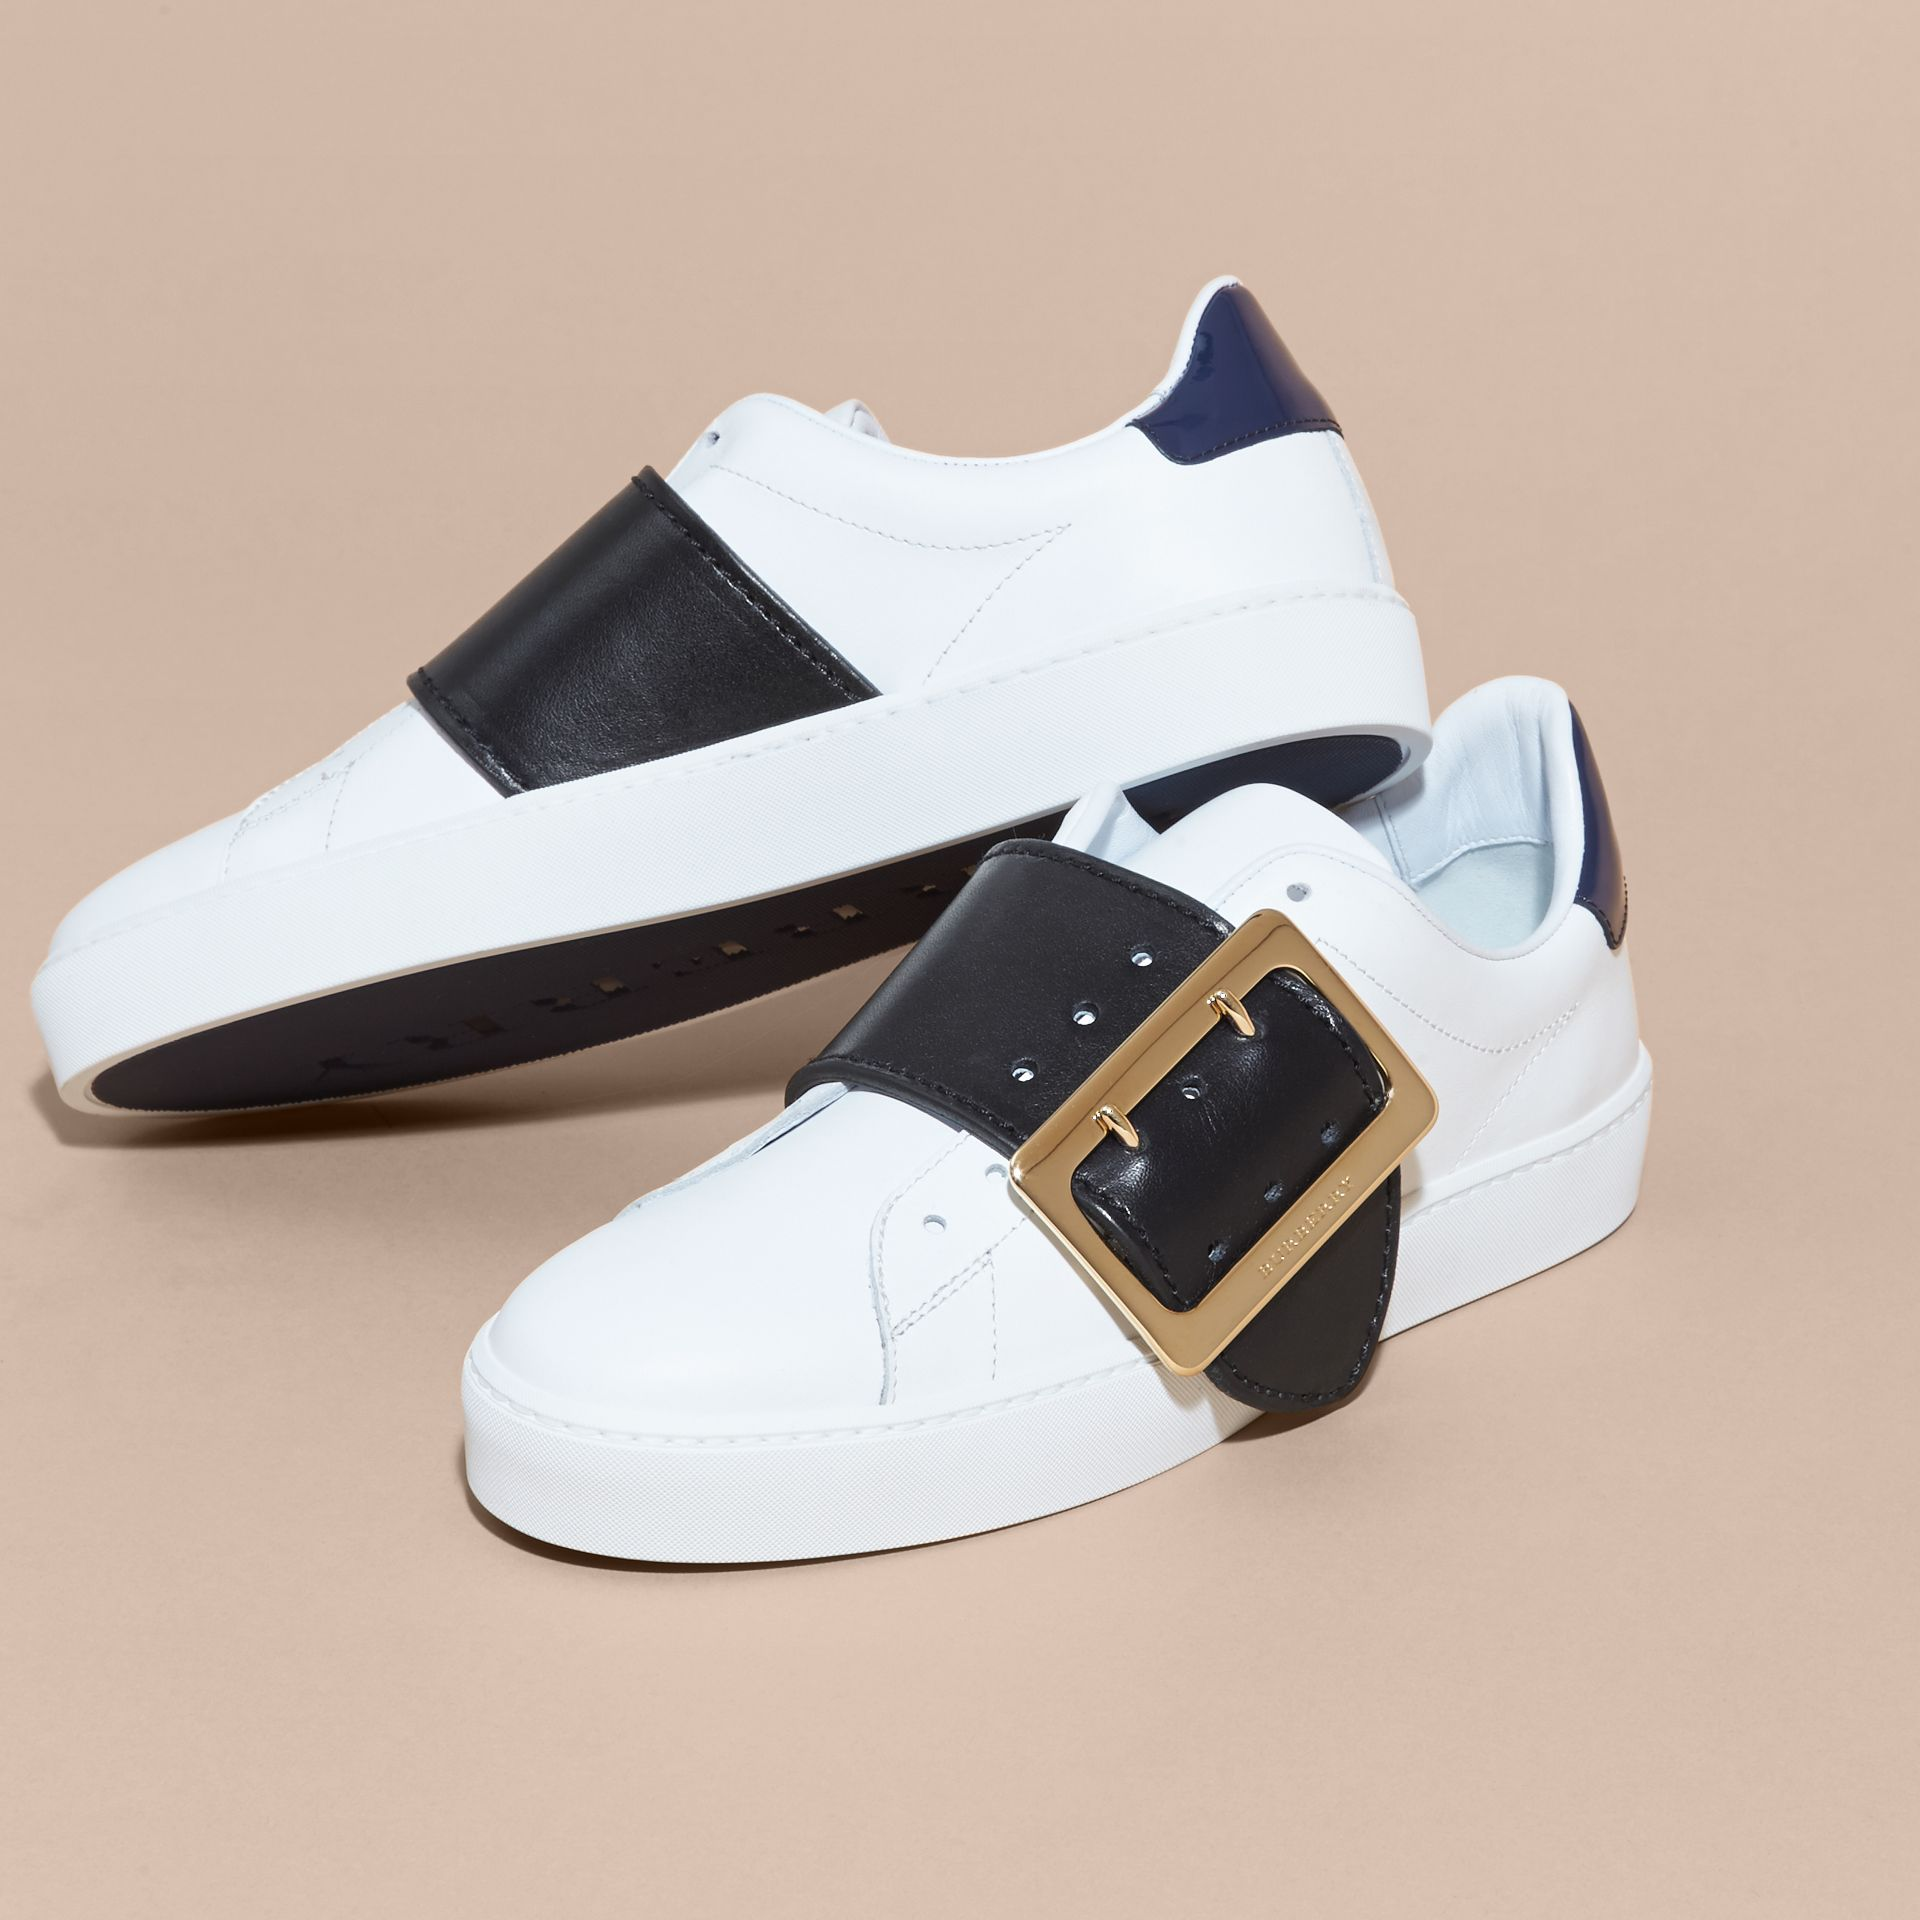 Optic white/navy Buckle Detail Leather Trainers Optic White/navy - gallery image 3